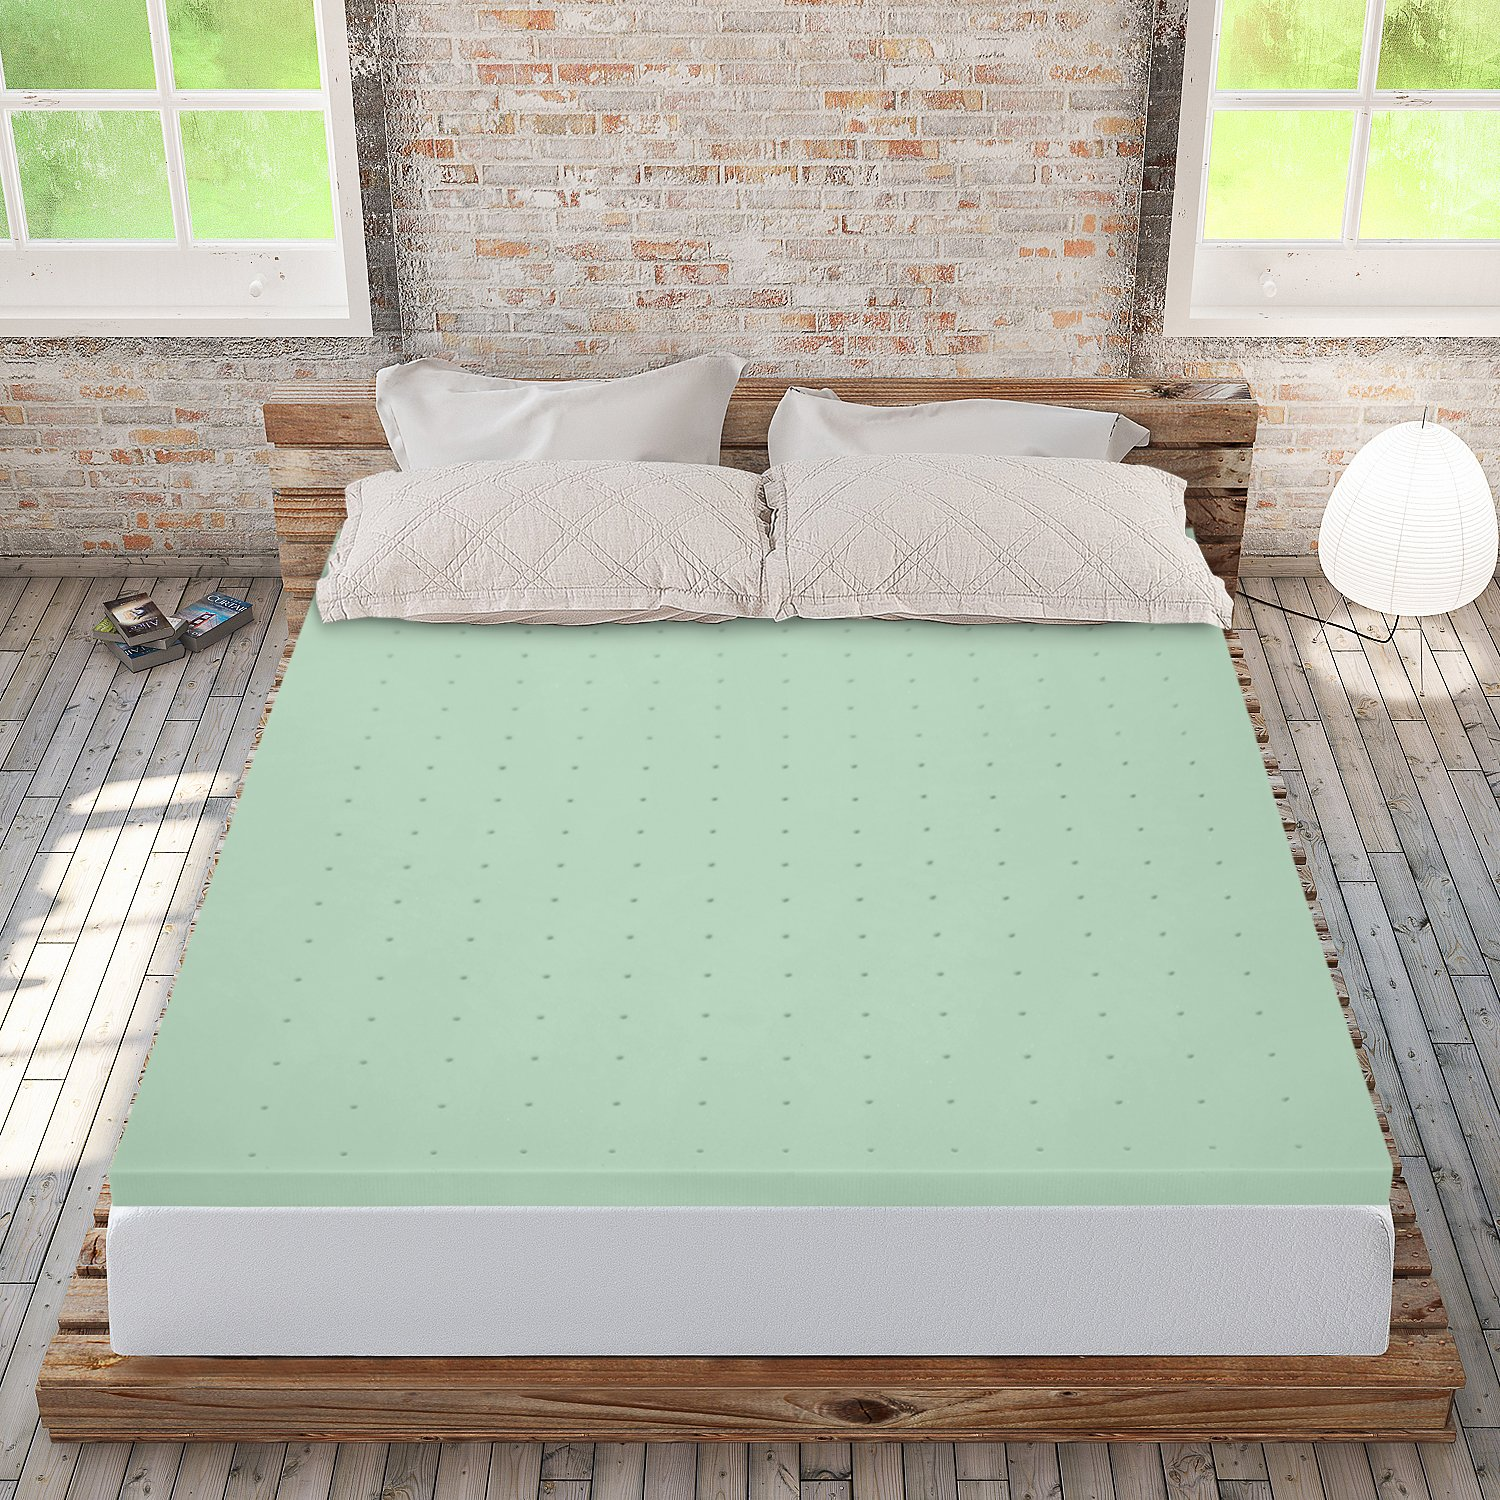 Best Price Mattress Full Mattress Topper - 2 Inch Memory Foam Bed Topper with Green Tea Cooling Mattress Pad, Full Size